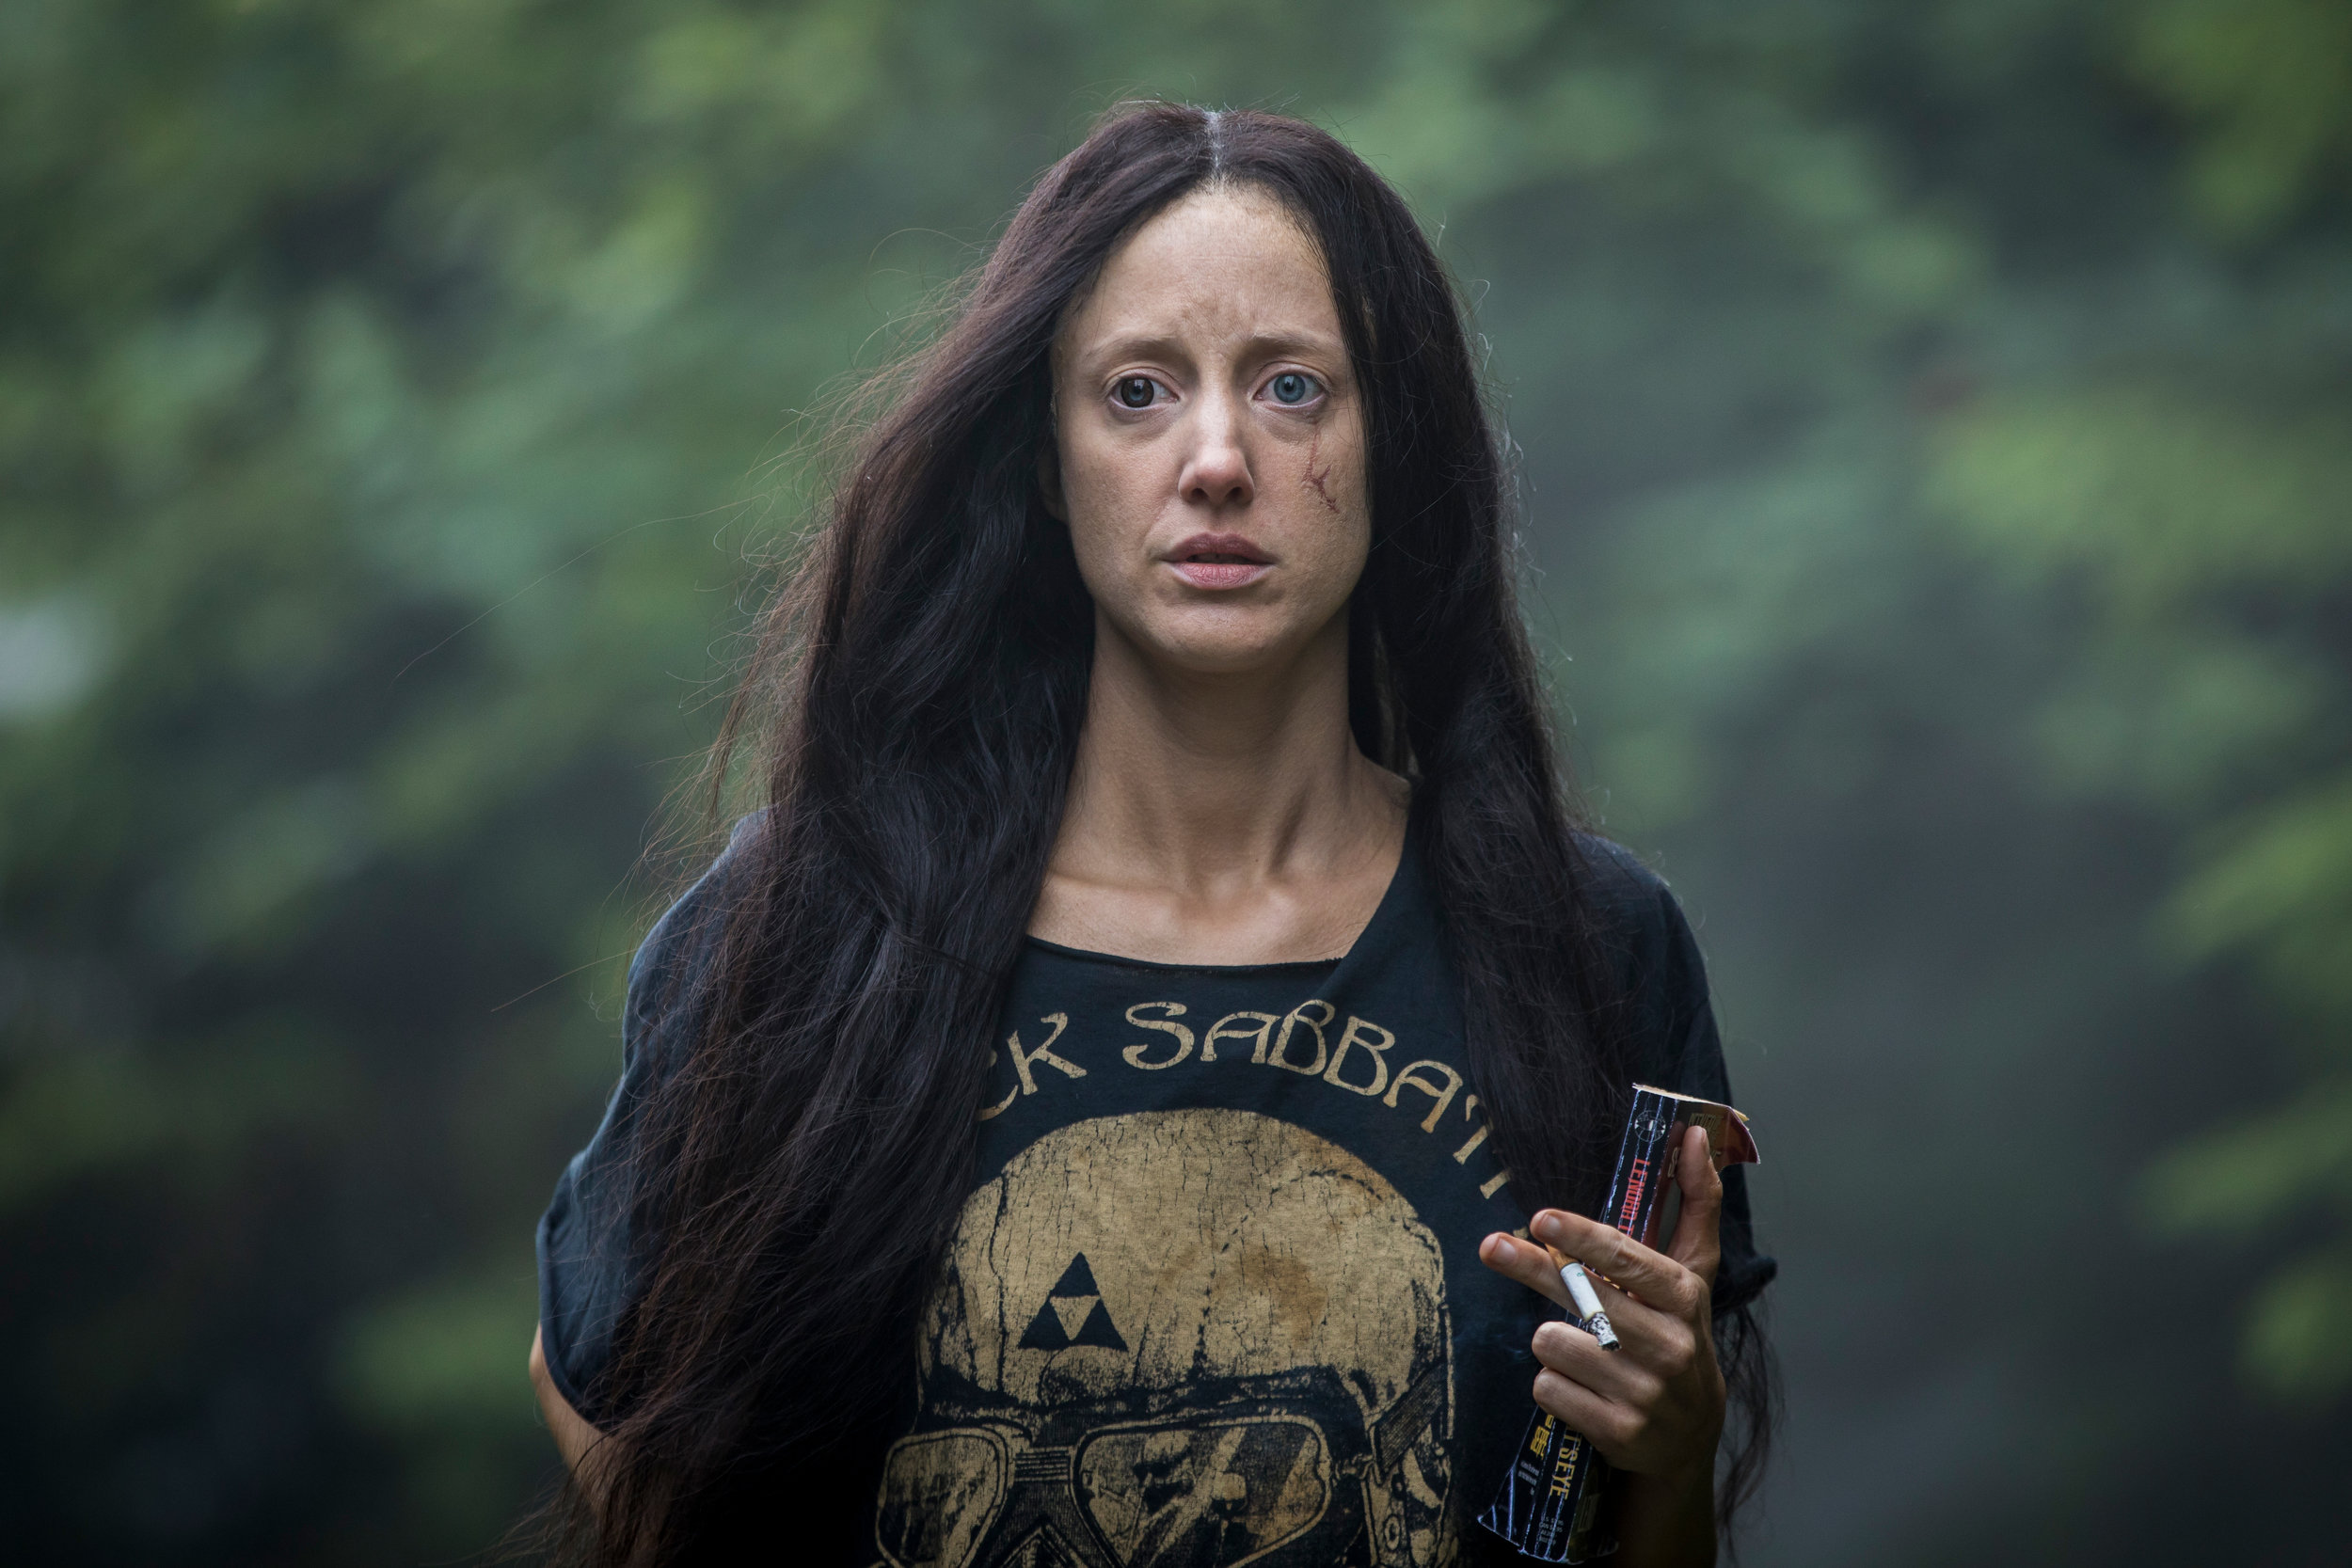 """Andrea Riseborough  as Mandy in the action, thriller film  """" MANDY """"  an  RLJE Films  release. Photo courtesy of  RLJE Films ."""